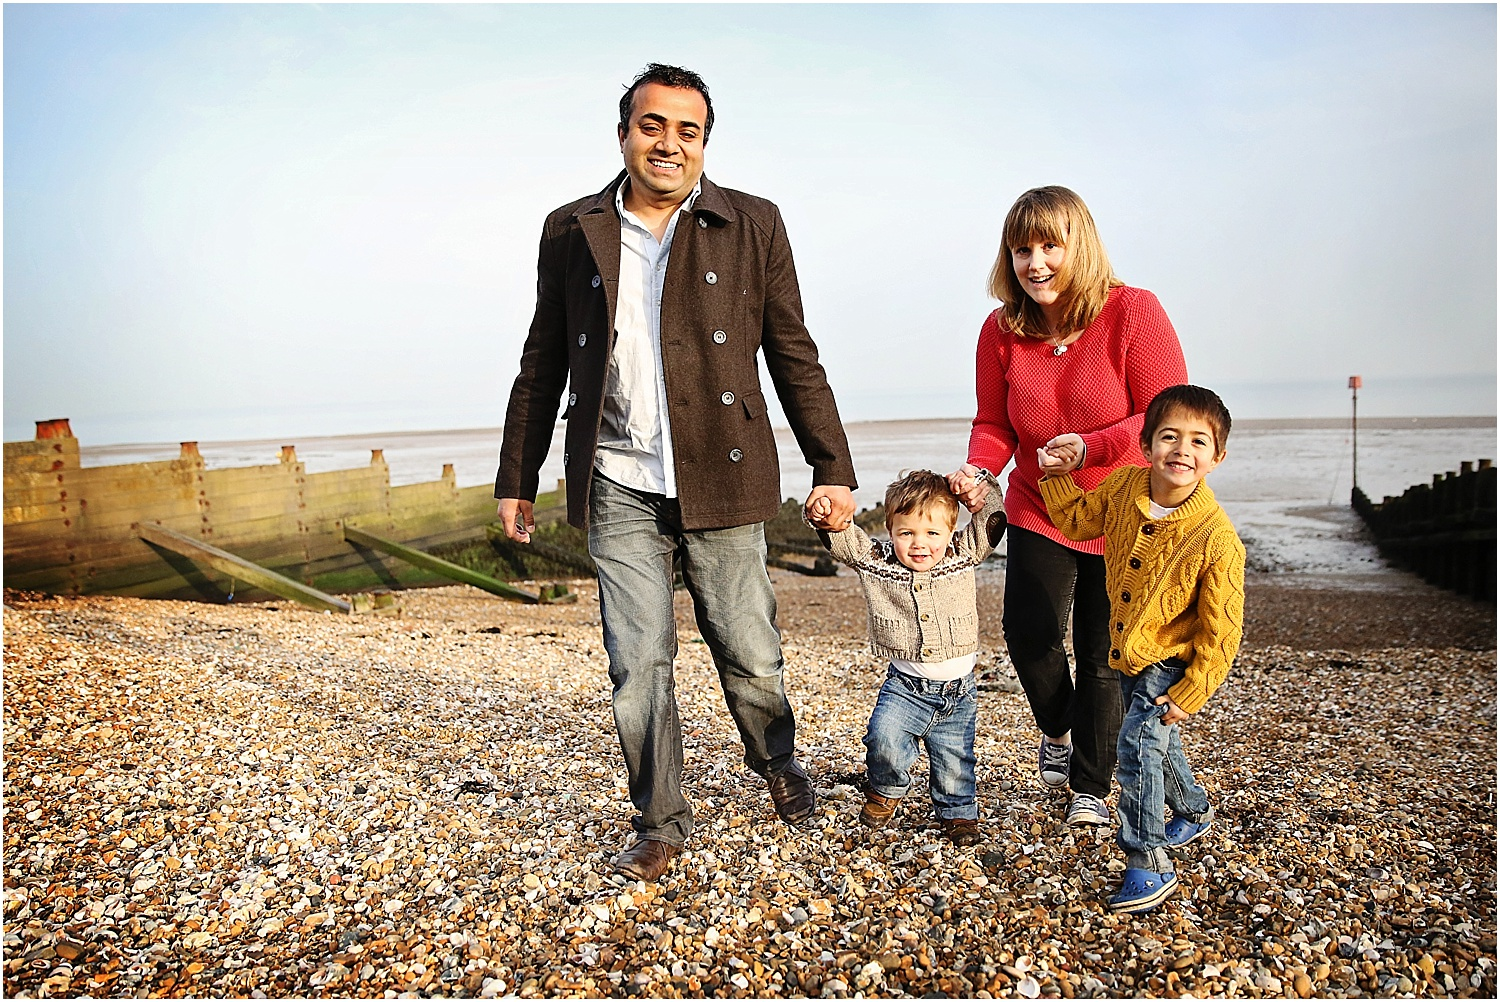 Whitstable beach photography family child walking early morning